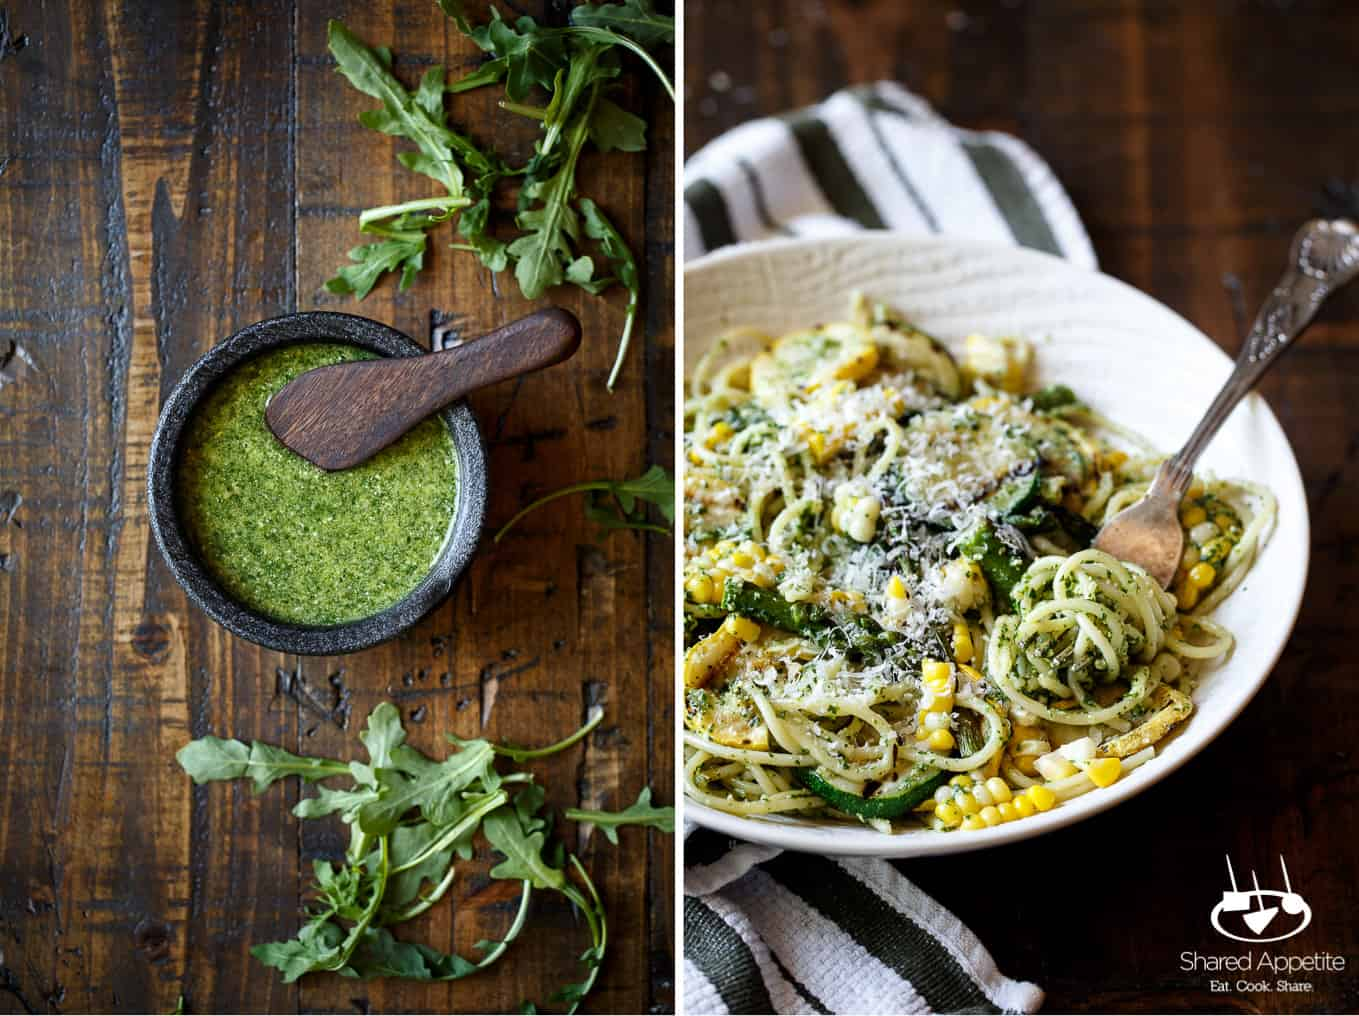 Arugula Pesto and a Fork in Summer Vegetable Pasta with Arugula Pesto | sharedappetite.com